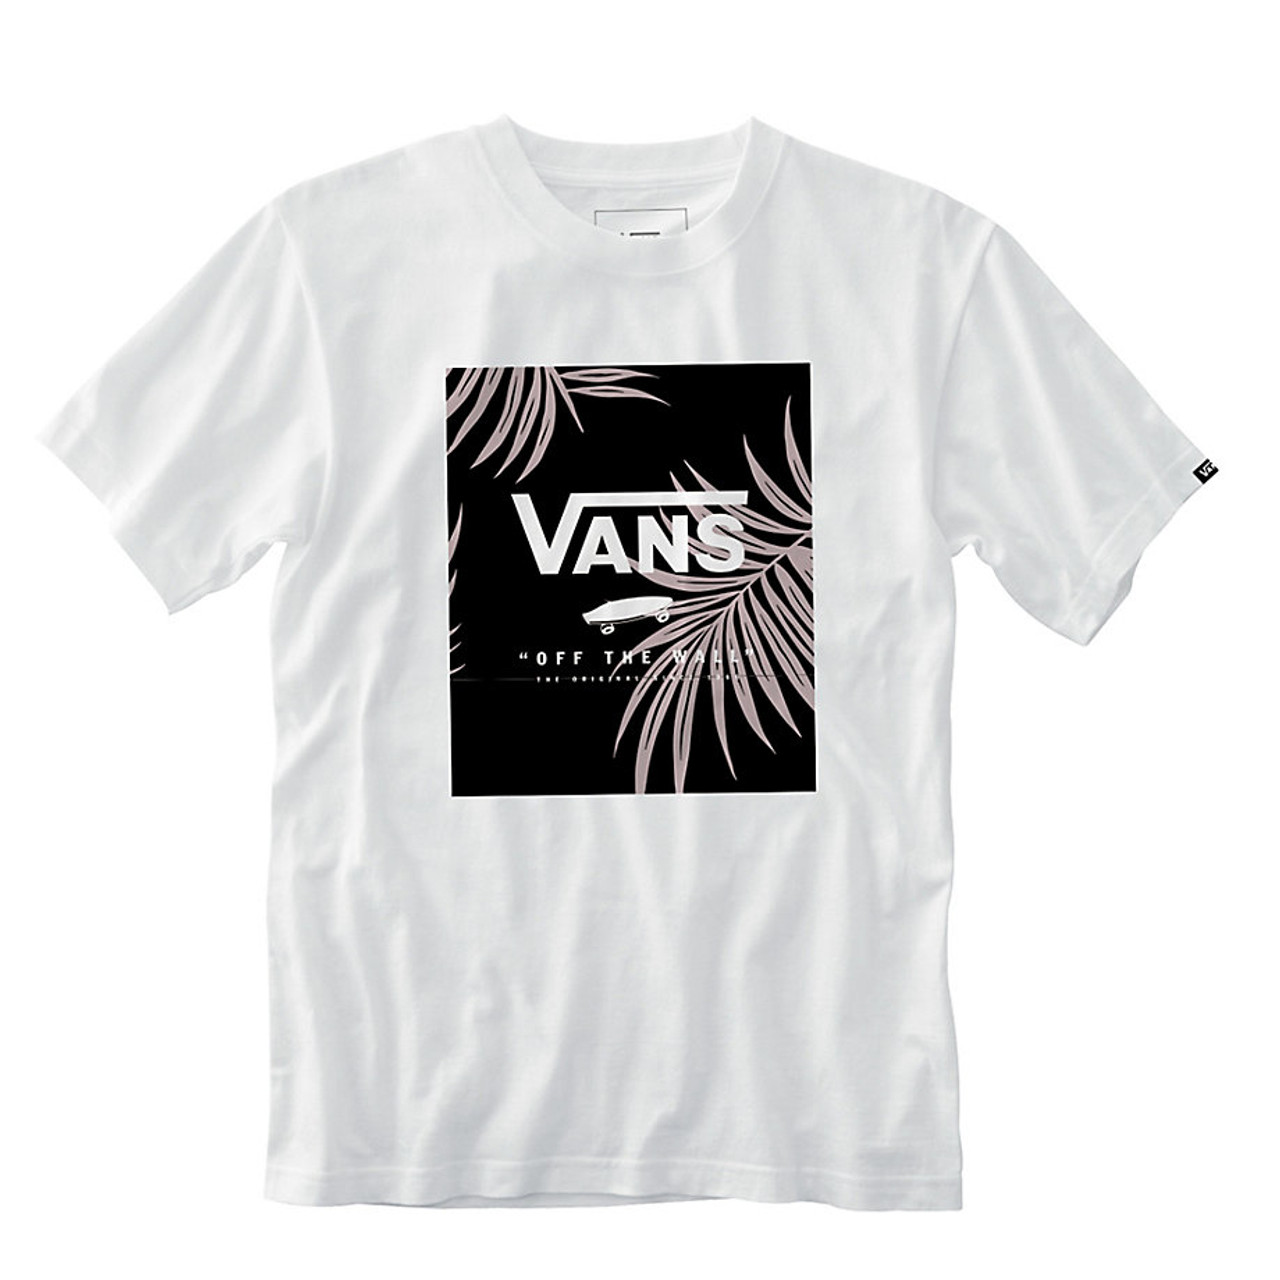 490e07fdaf Vans Tee Shirt - Print Box - White Peace Leaf Floral - Surf and Dirt